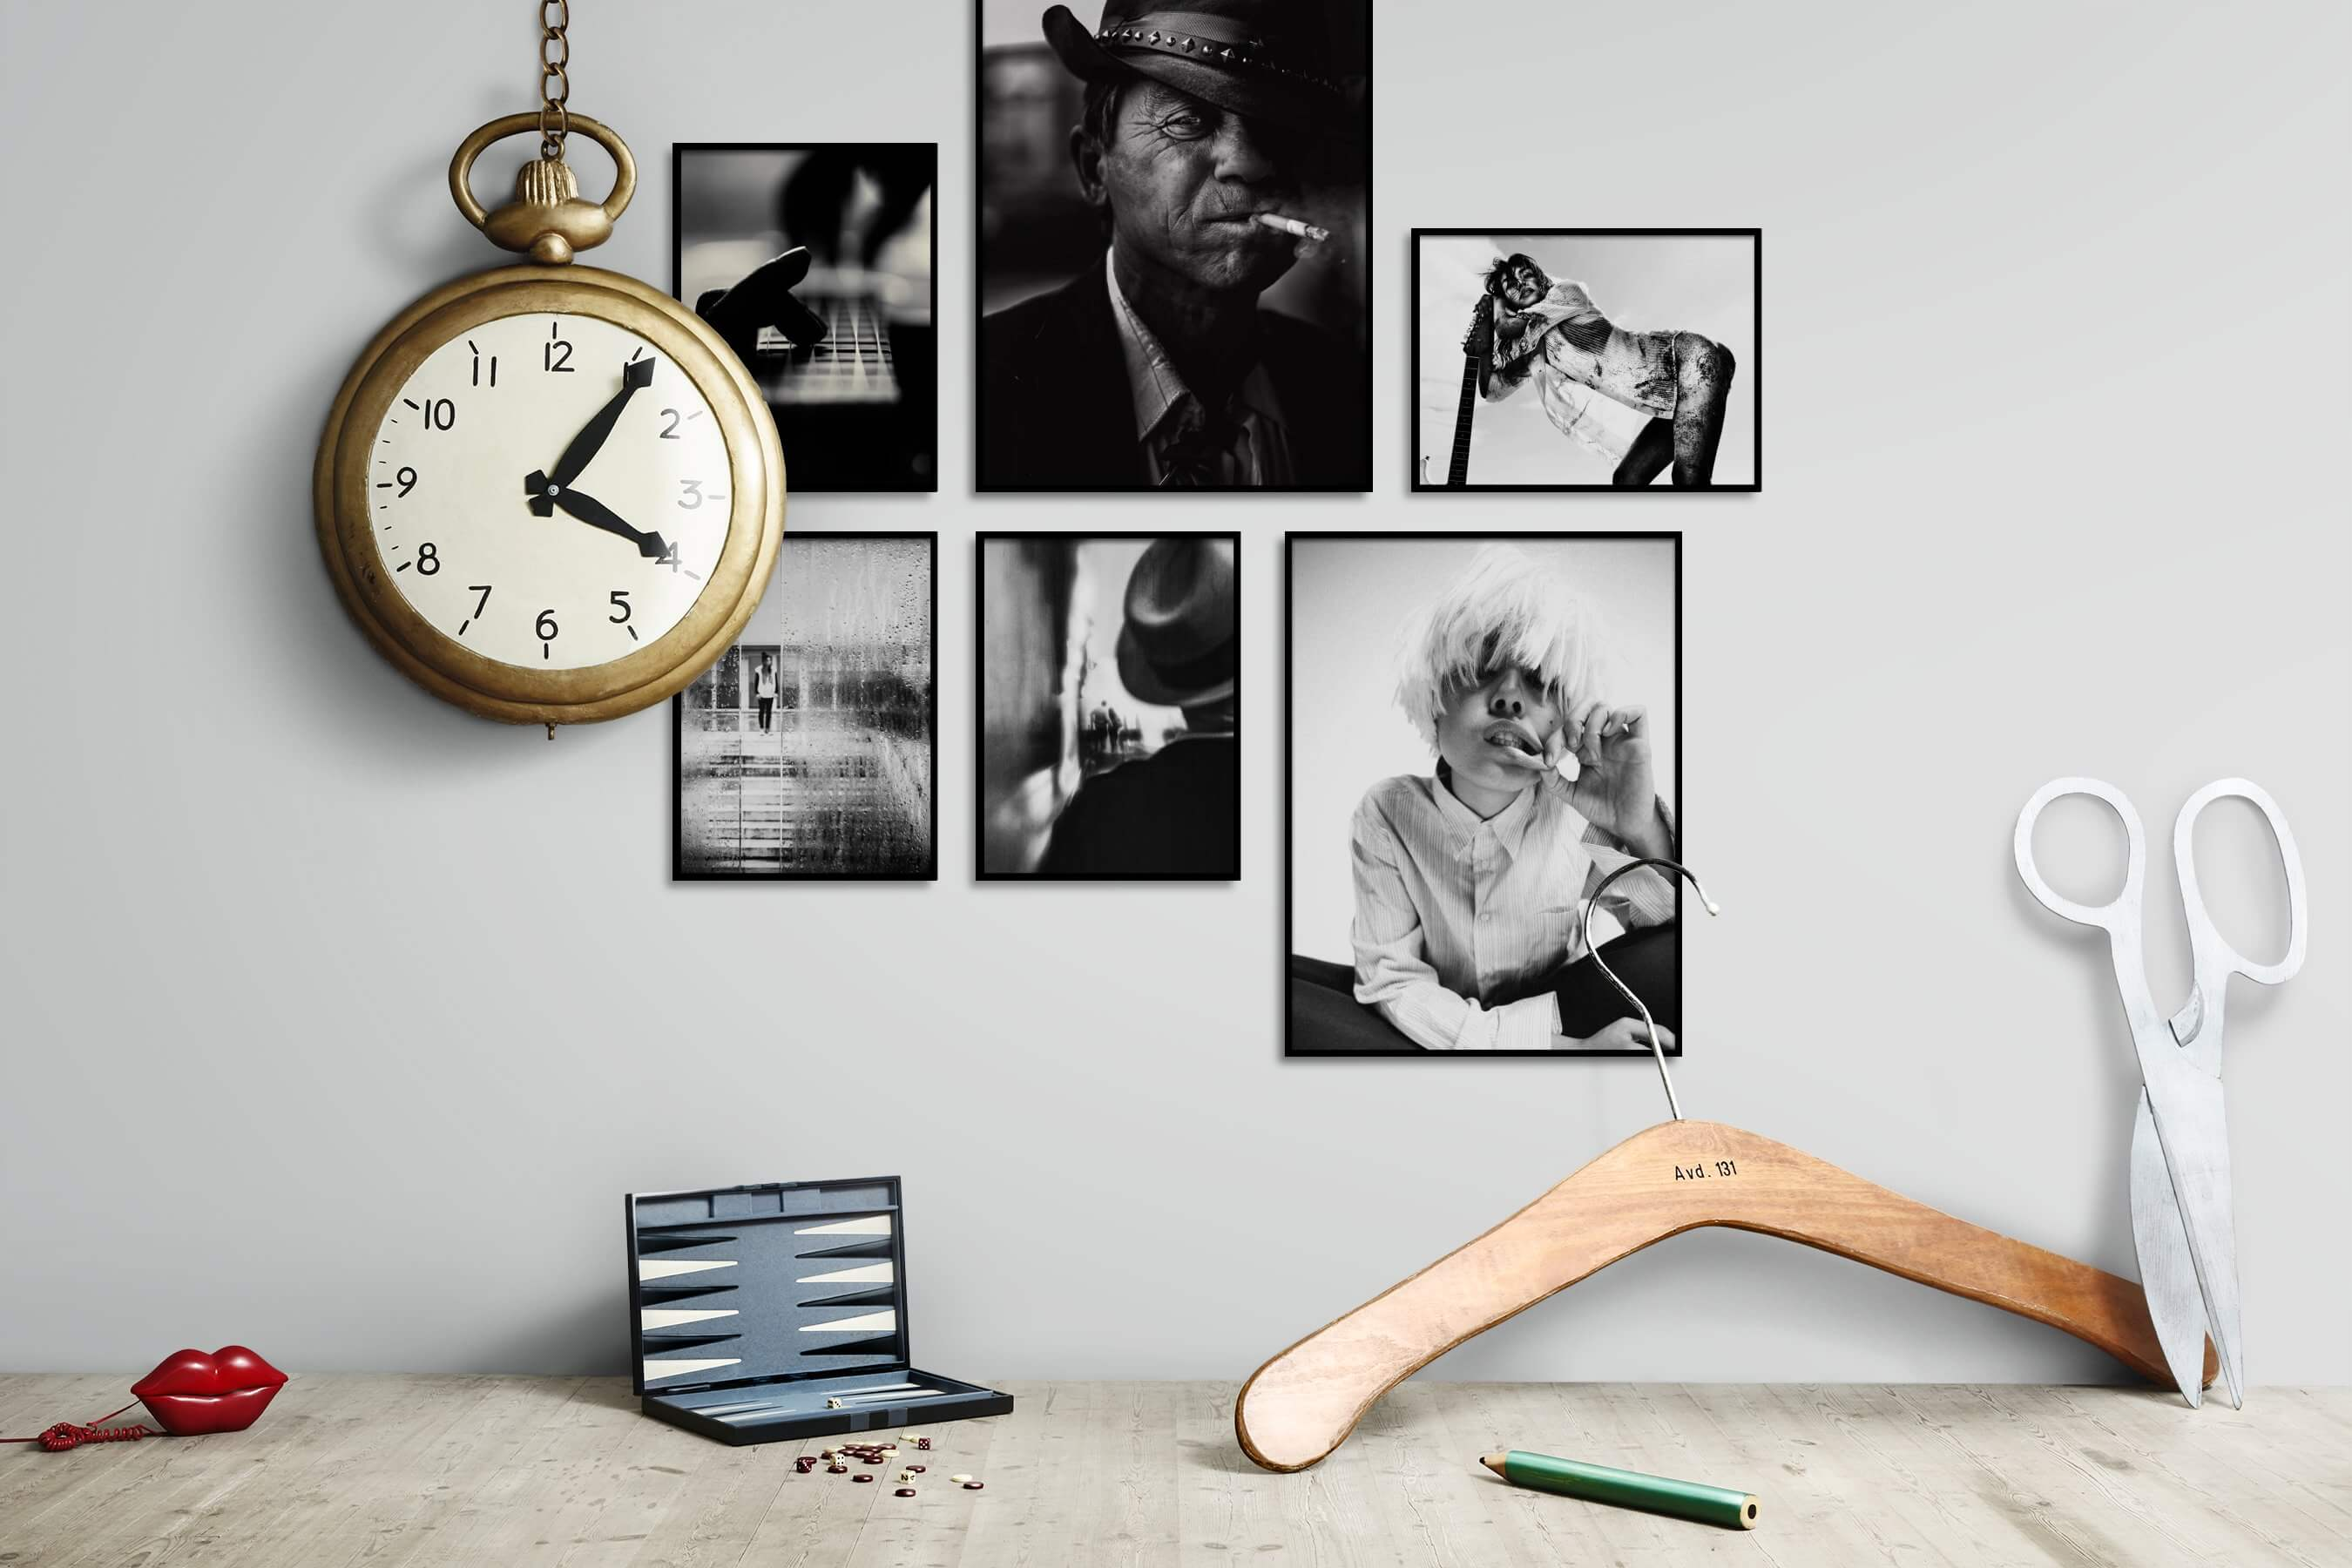 Gallery wall idea with six framed pictures arranged on a wall depicting Black & White, For the Moderate, Fashion & Beauty, and Vintage